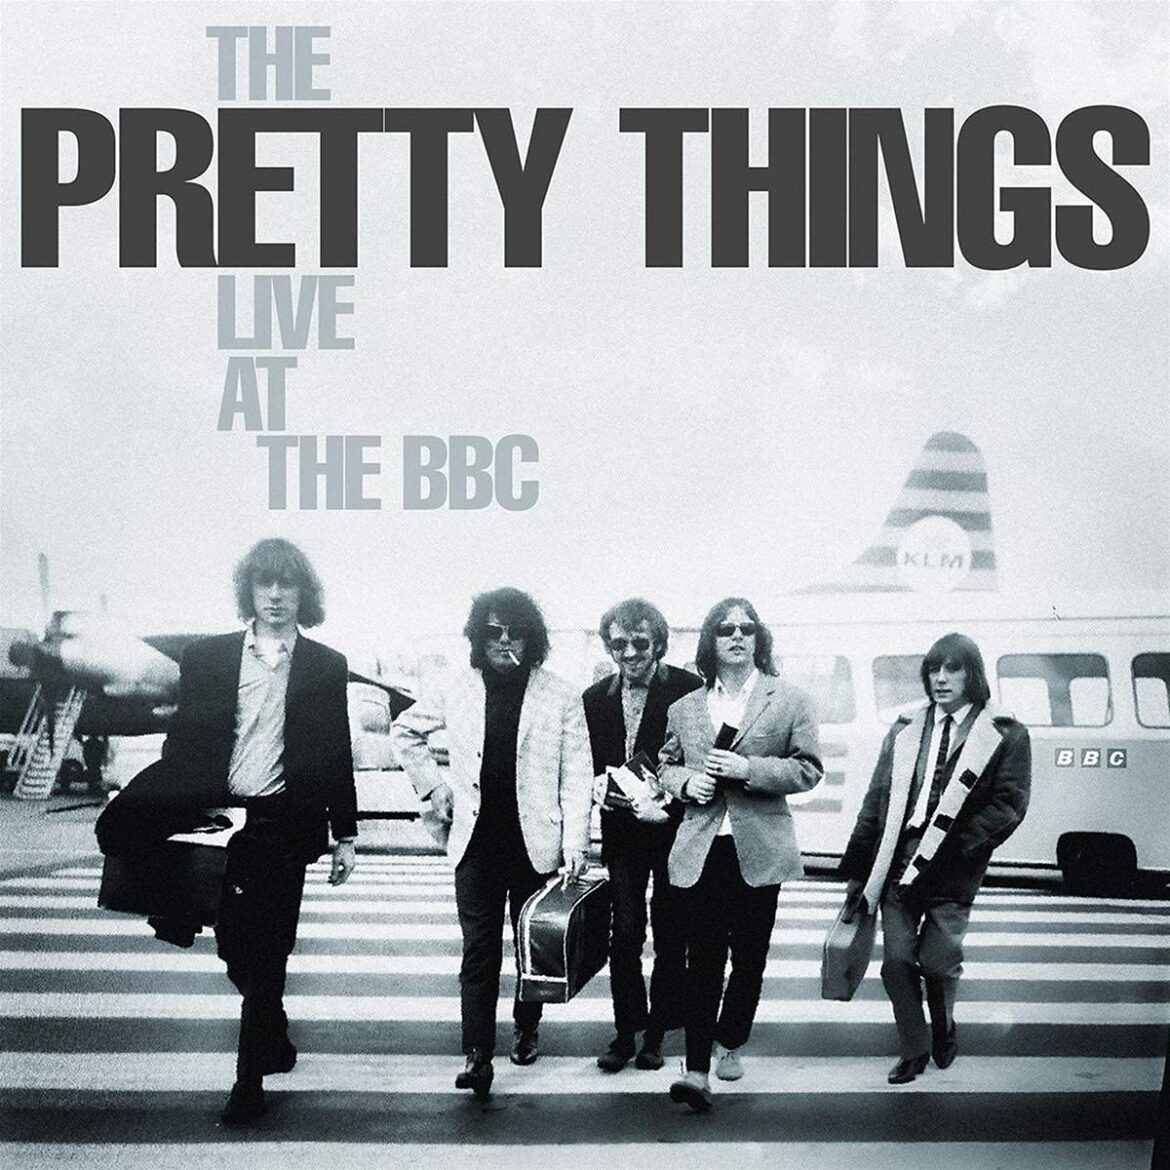 PRETTY THINGS – LIVE AT THE BBC